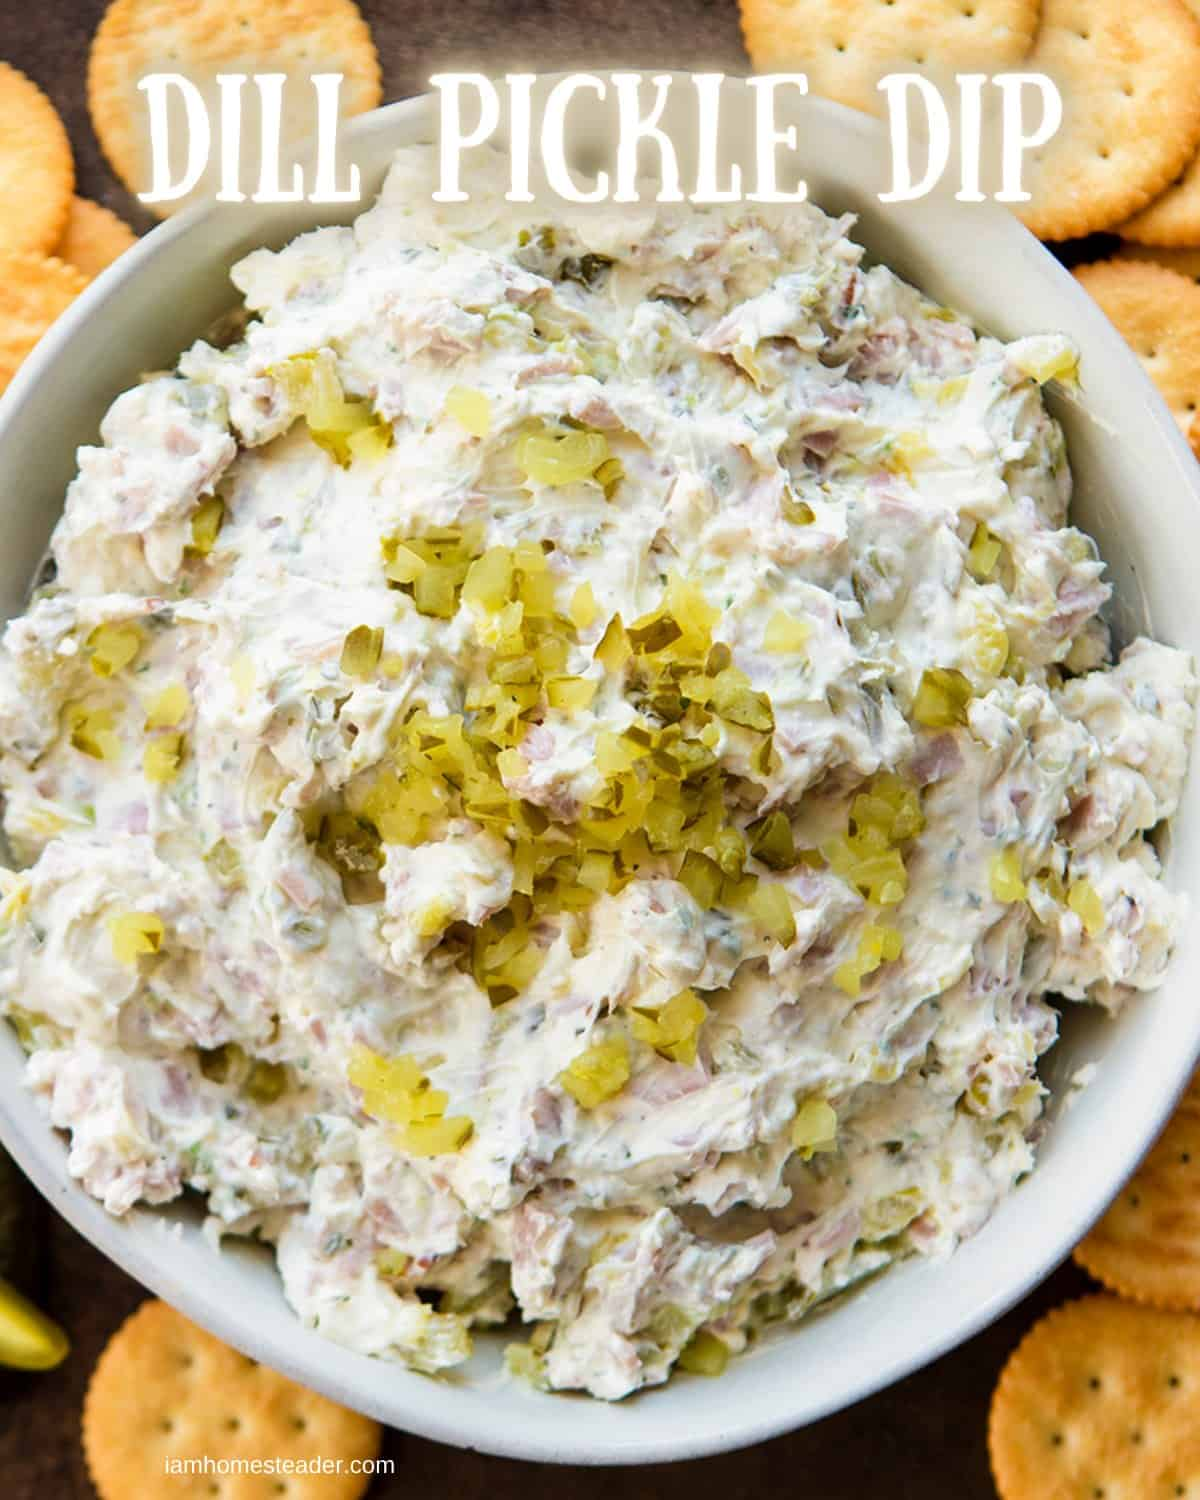 Dill Pickle Dip in Bowl from Overhead